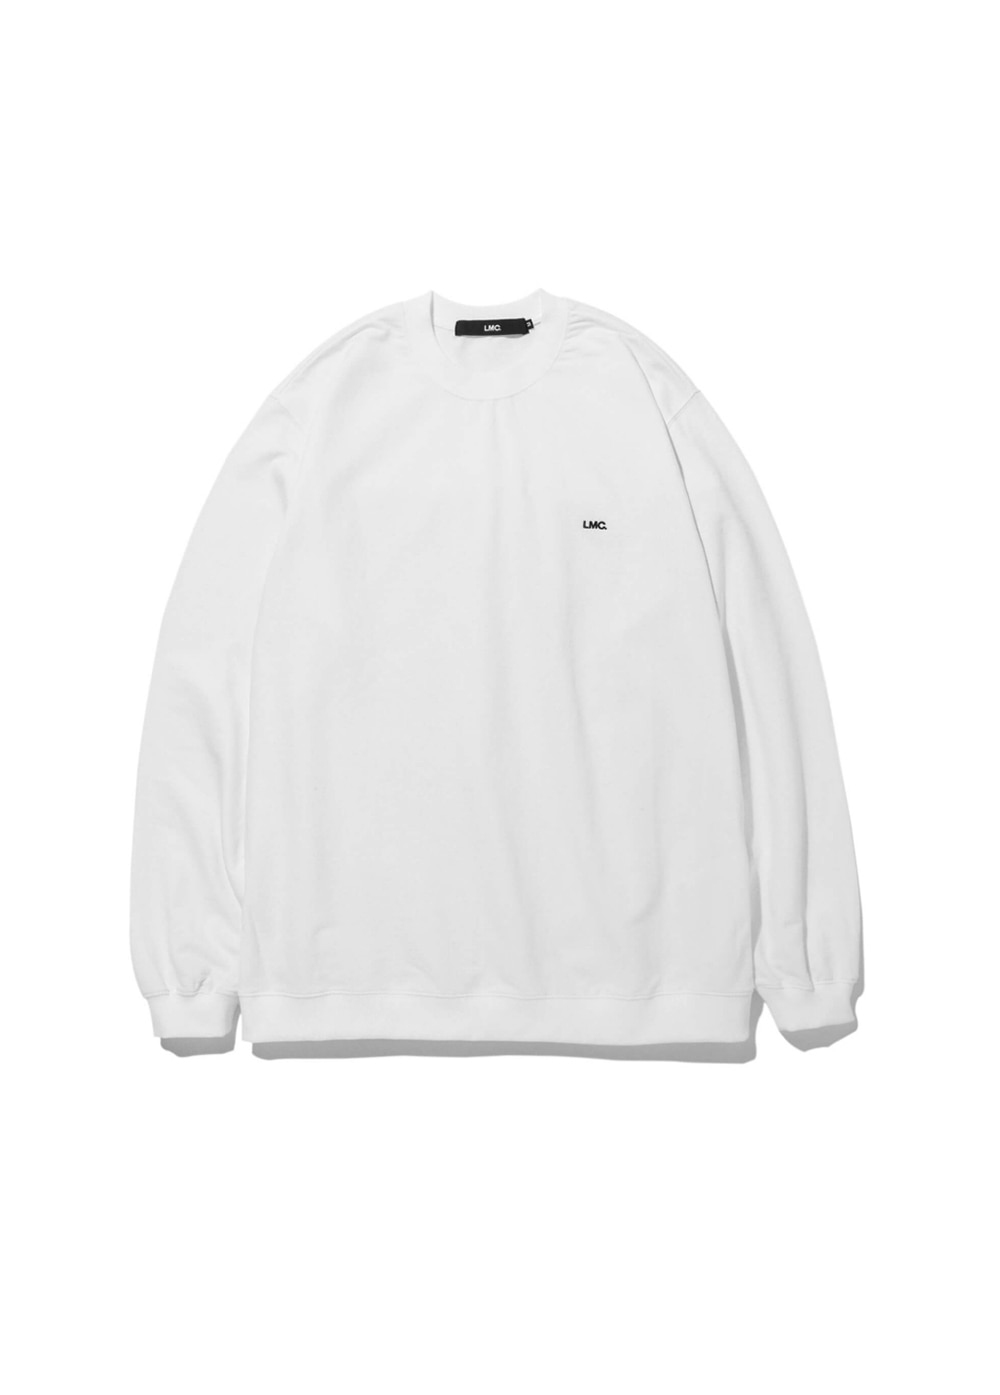 LMC STRAIGHT RIB SWEAT TEE white